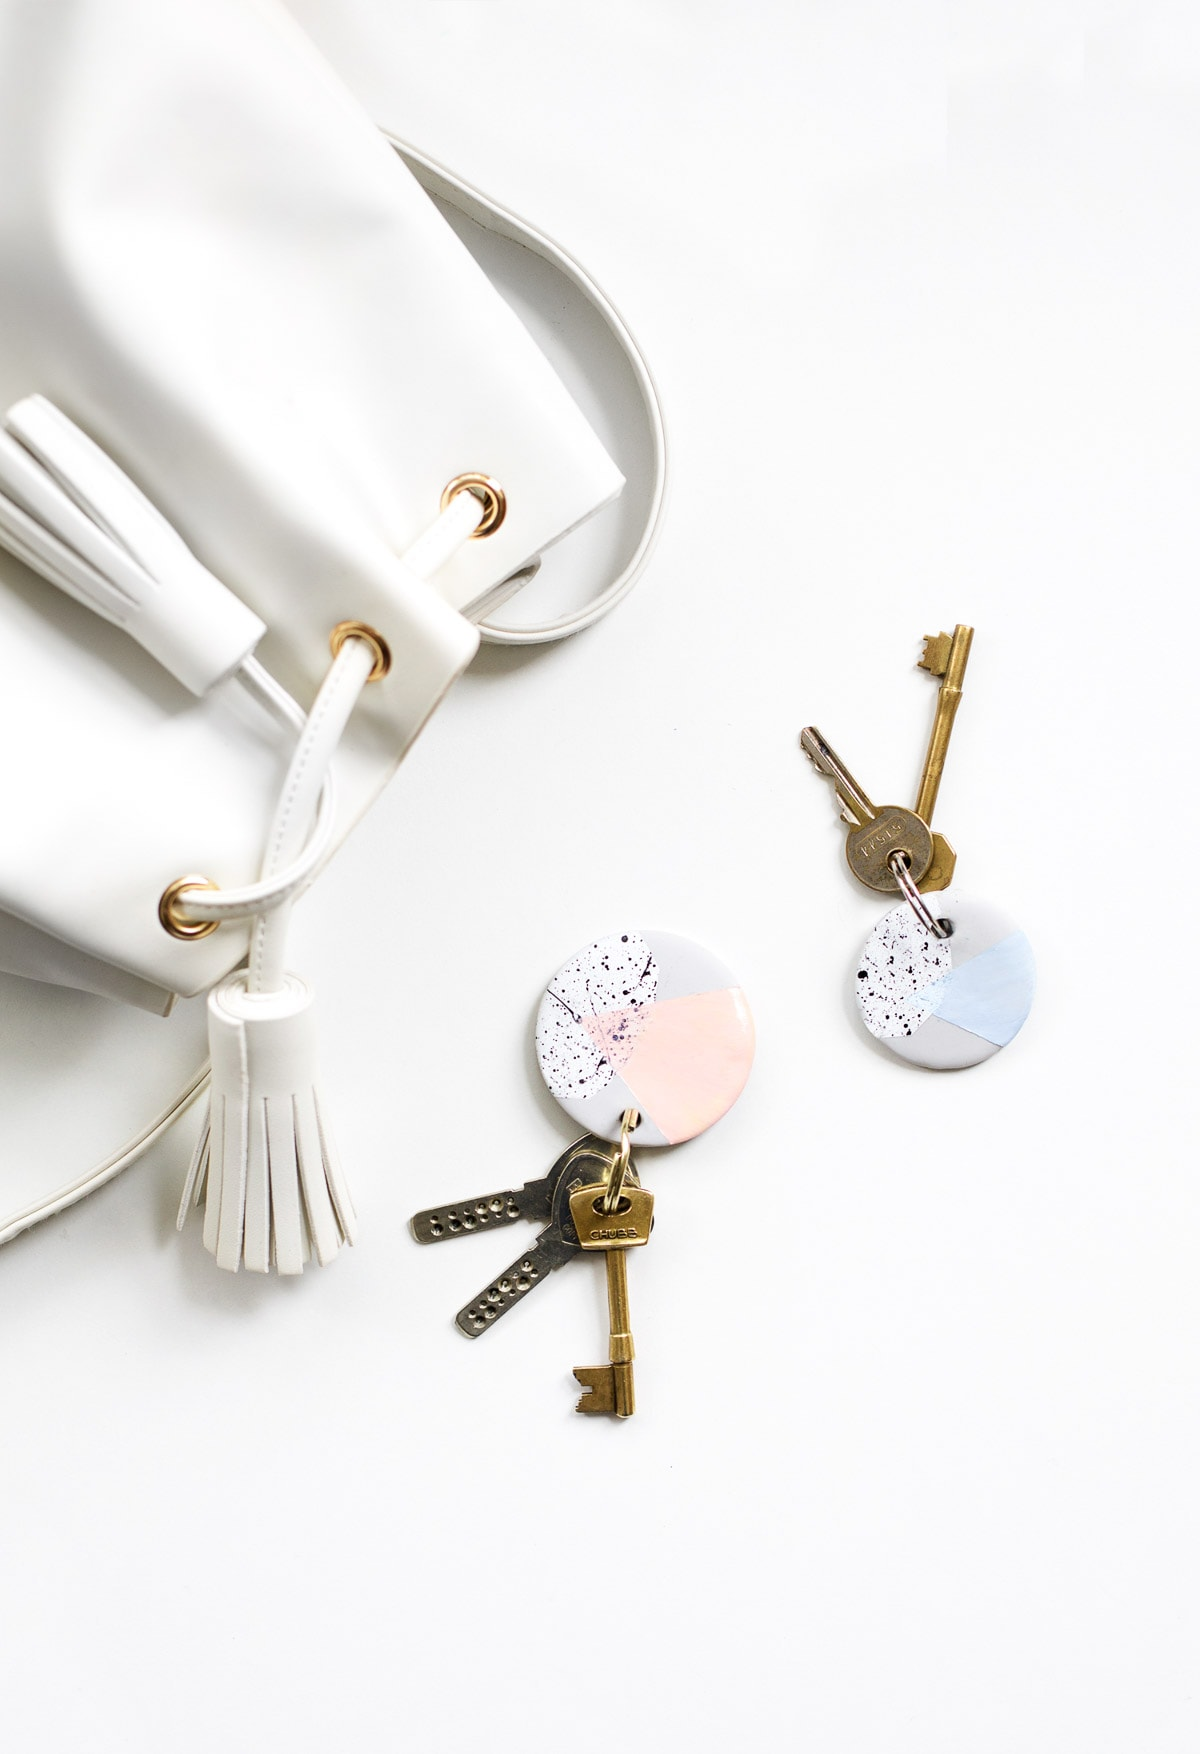 A perfect easy Clay Keychain DIY to make your keys look chic! - sugar and cloth - houston blogger Ashley Rose #doityourself #diy #keys #keyring #keychain #speckled #gift